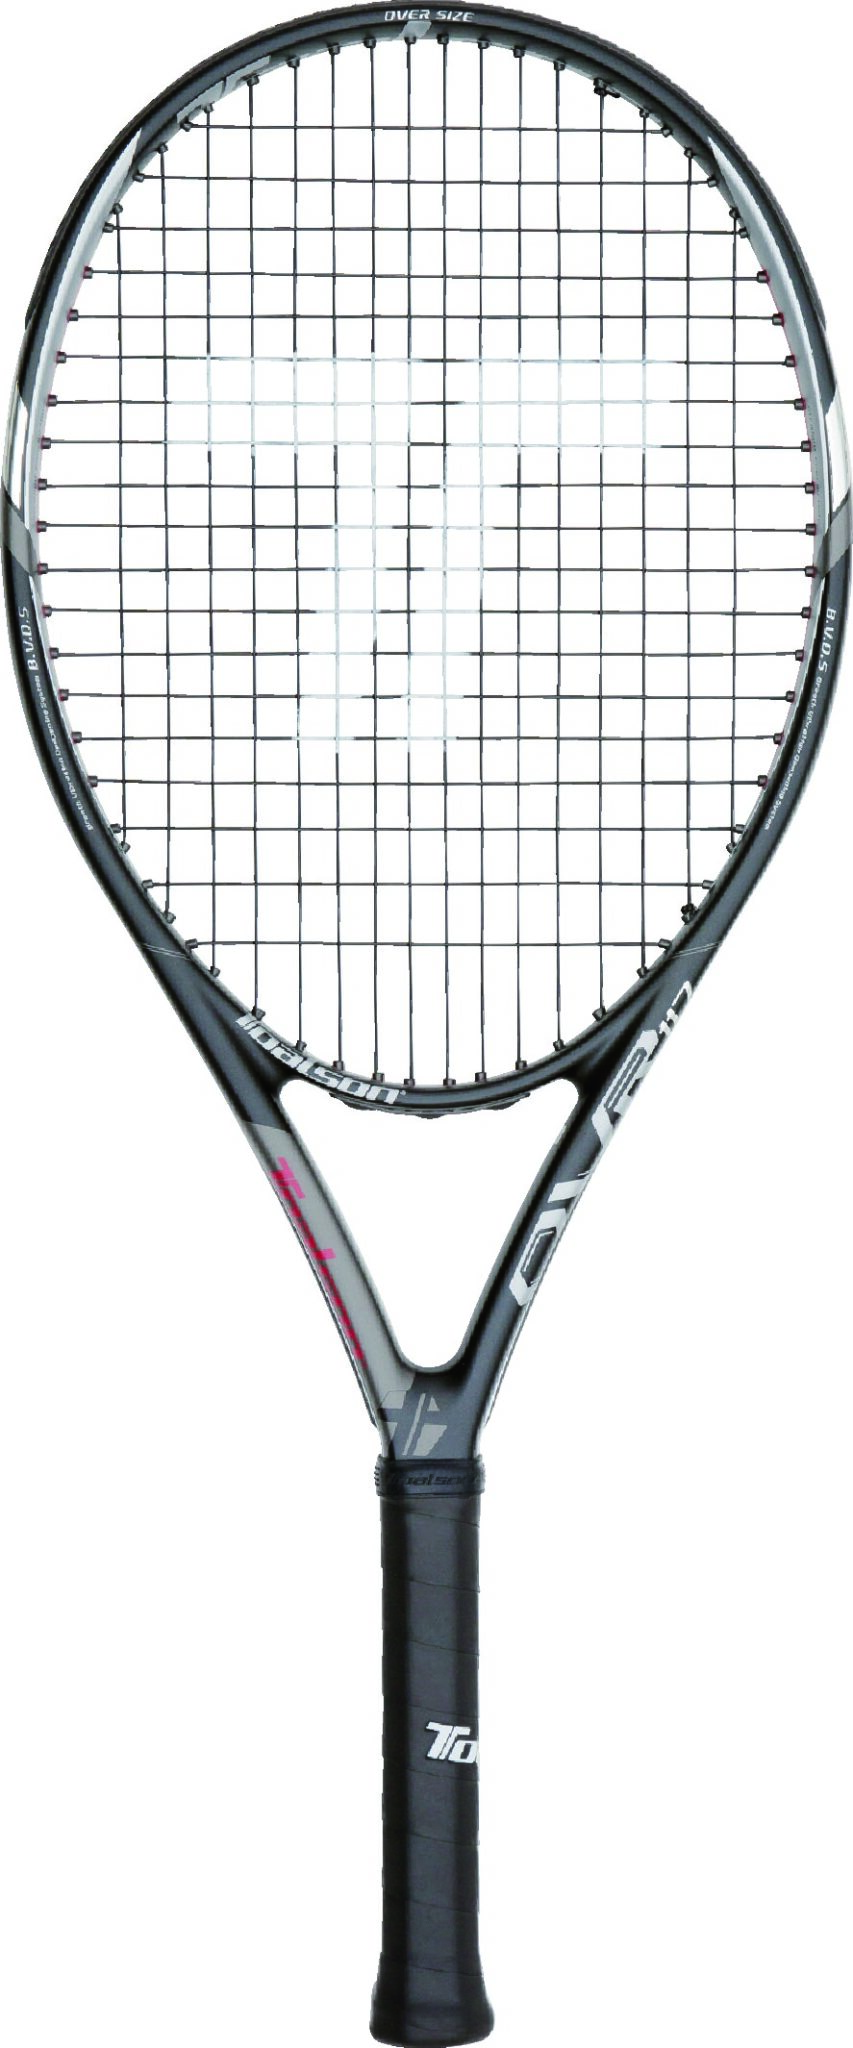 Tennis Racket OVR 117 Black